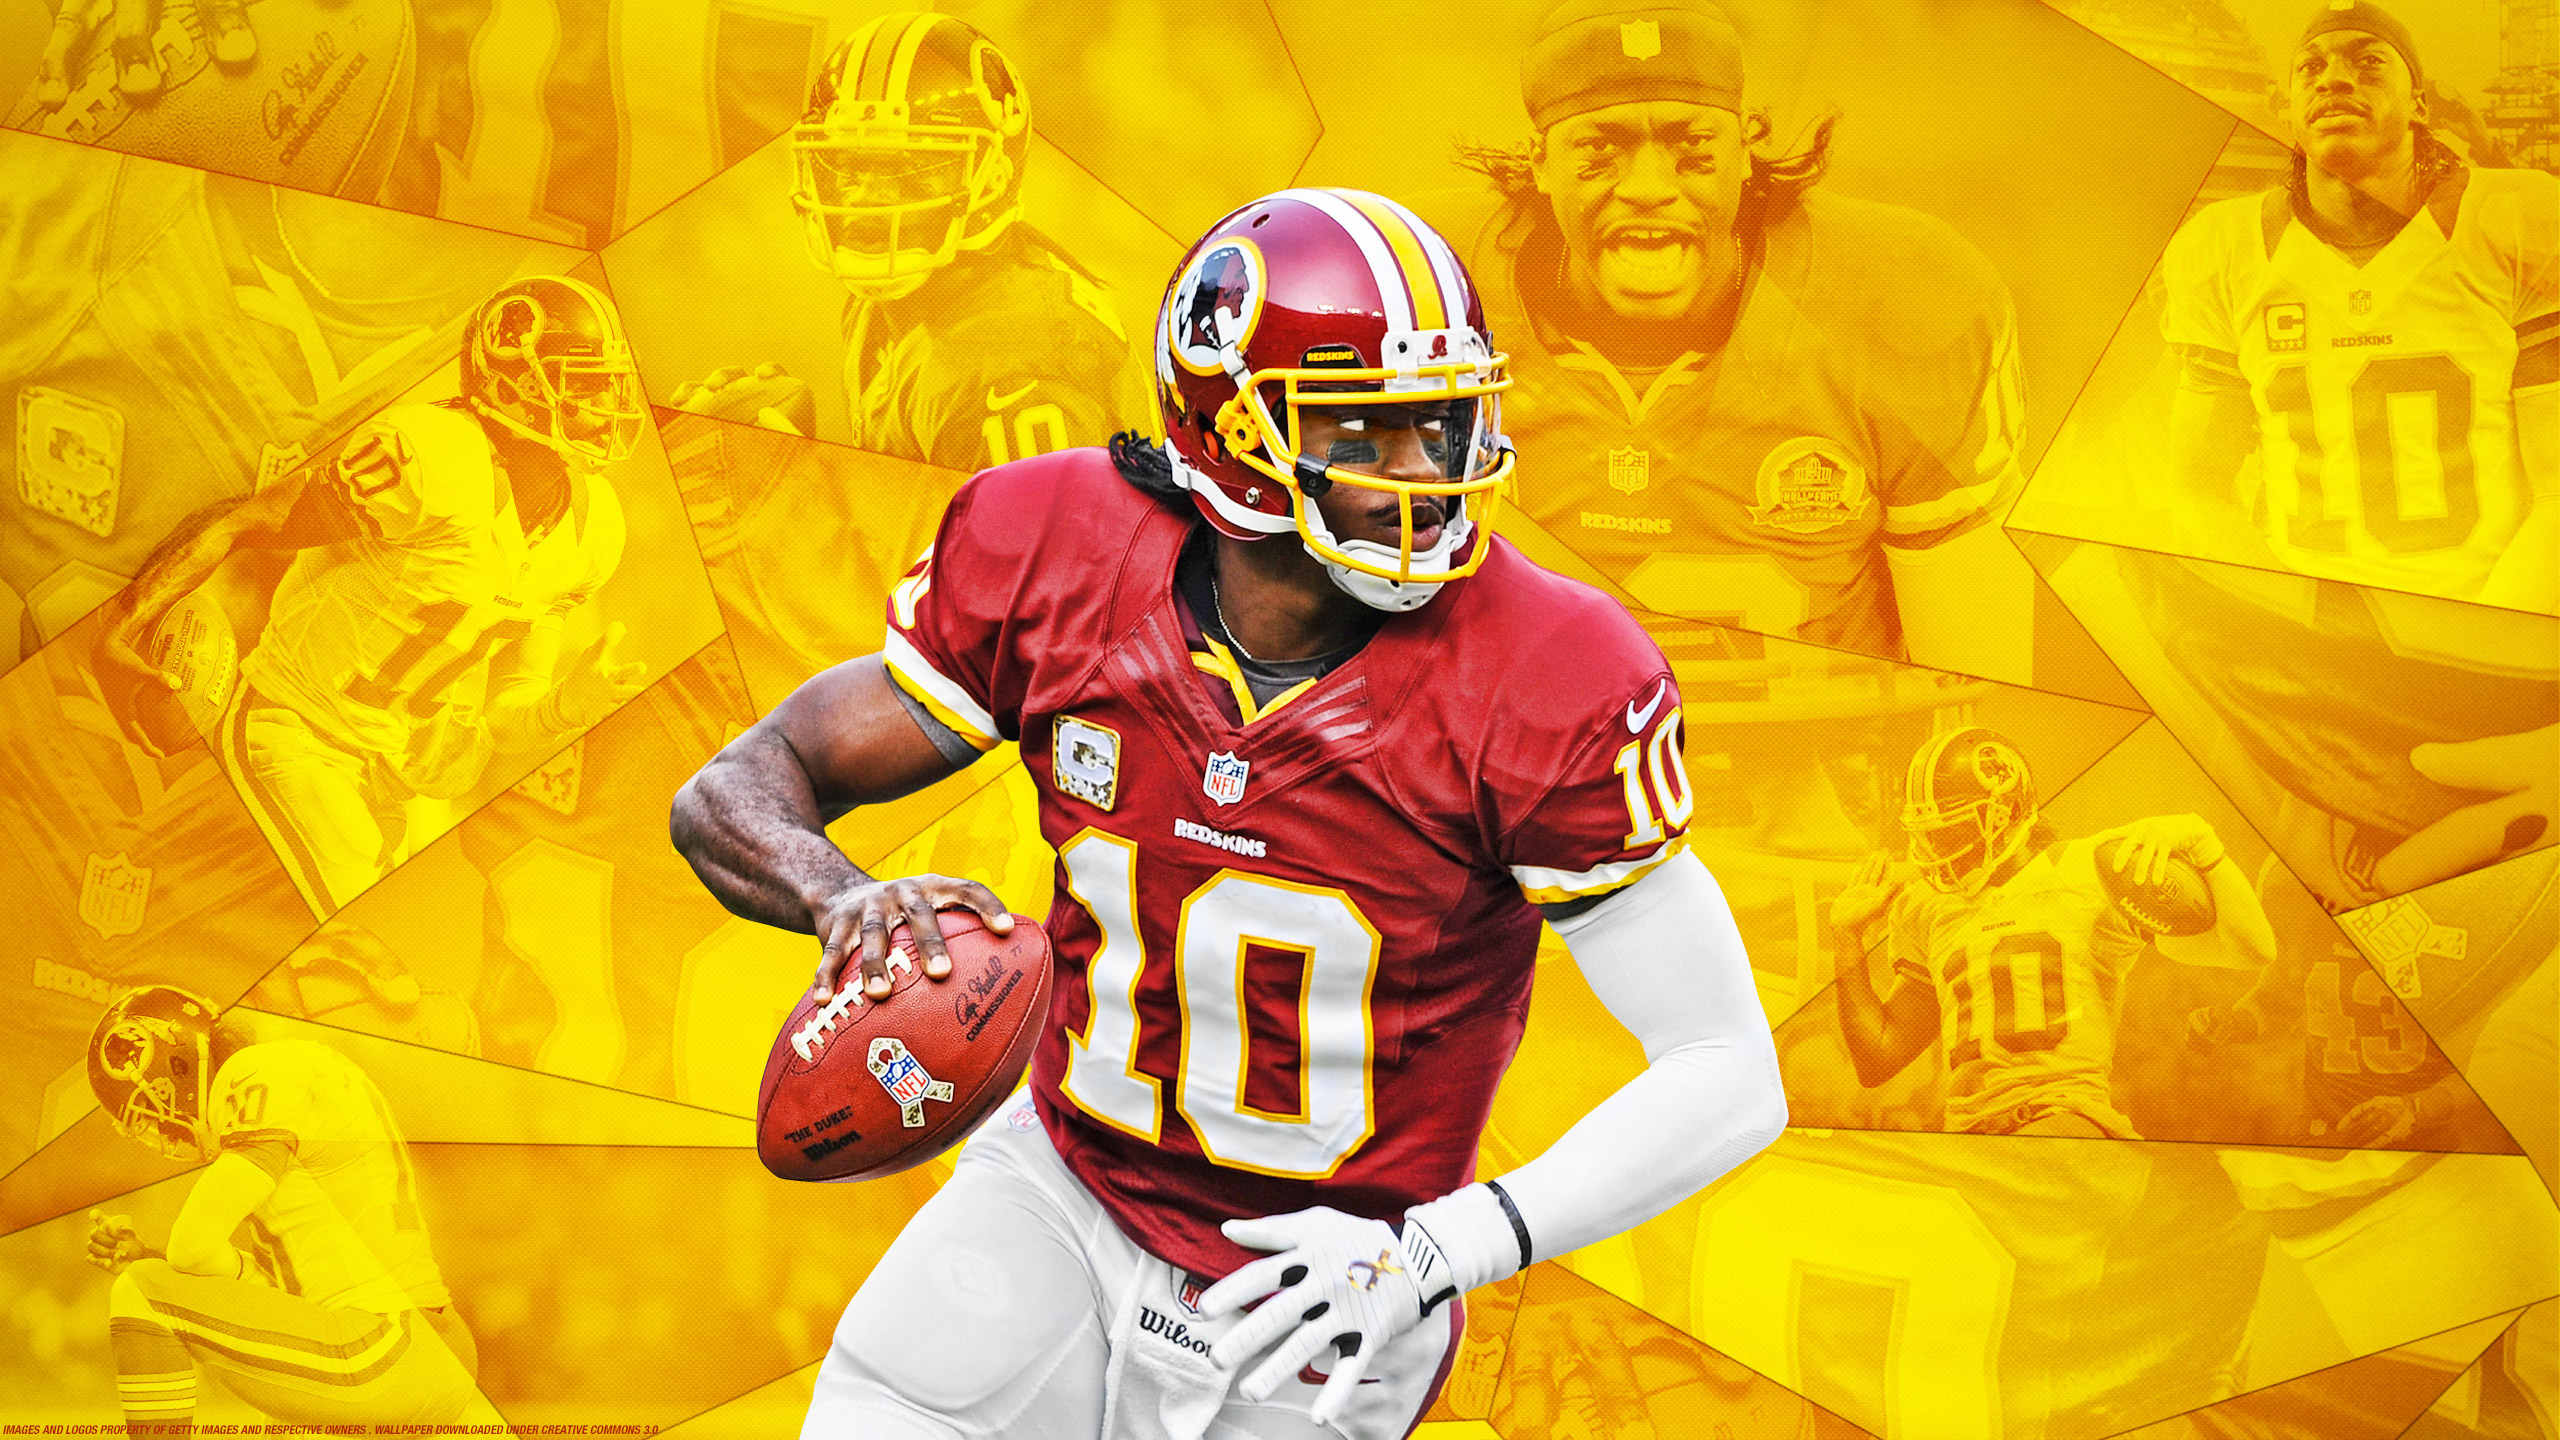 Redskins Wallpaper